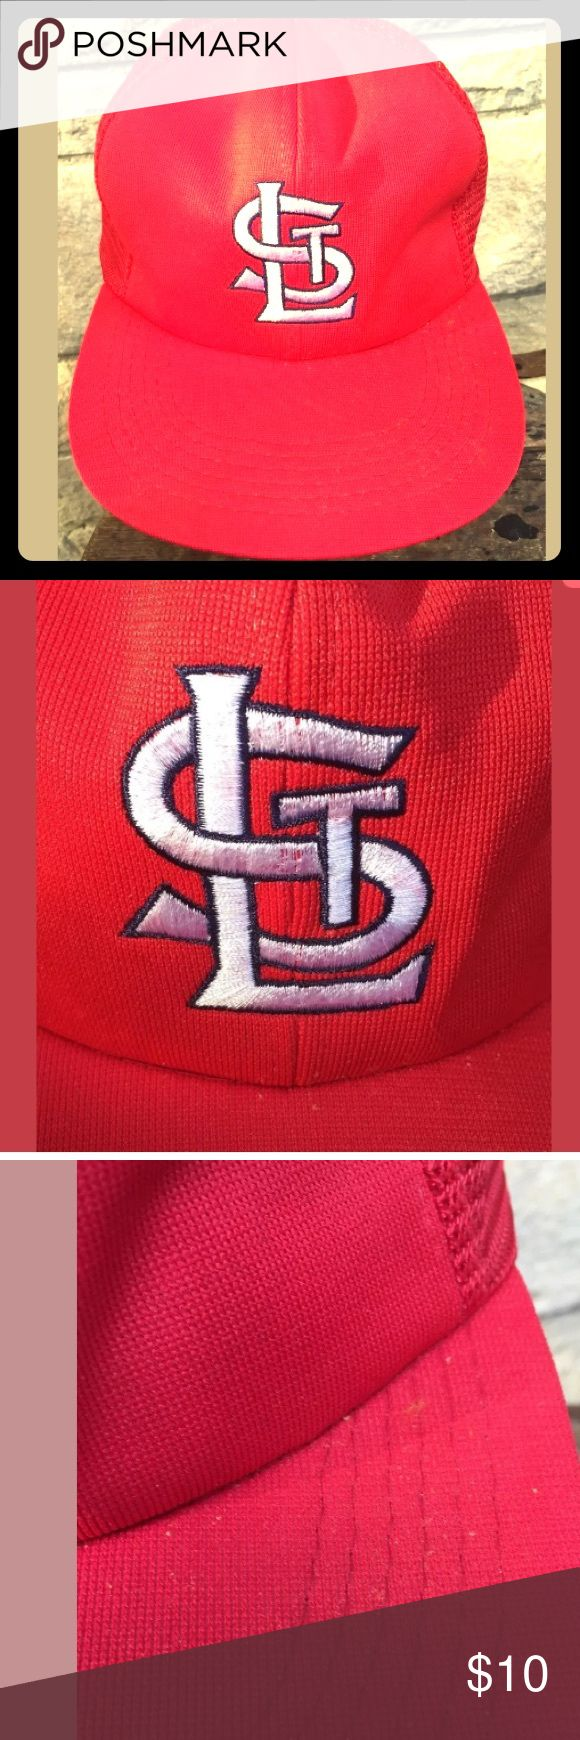 Vintage St. Louis Cardinals Hat True Vintage St. Louis Cardinals SnapBack Hat Cap; mesh style back, adjustable, red with White logo; Official MLB Amoco Oil Promotional tag inside, minor wear/staining- see photos MLB official license Accessories Hats